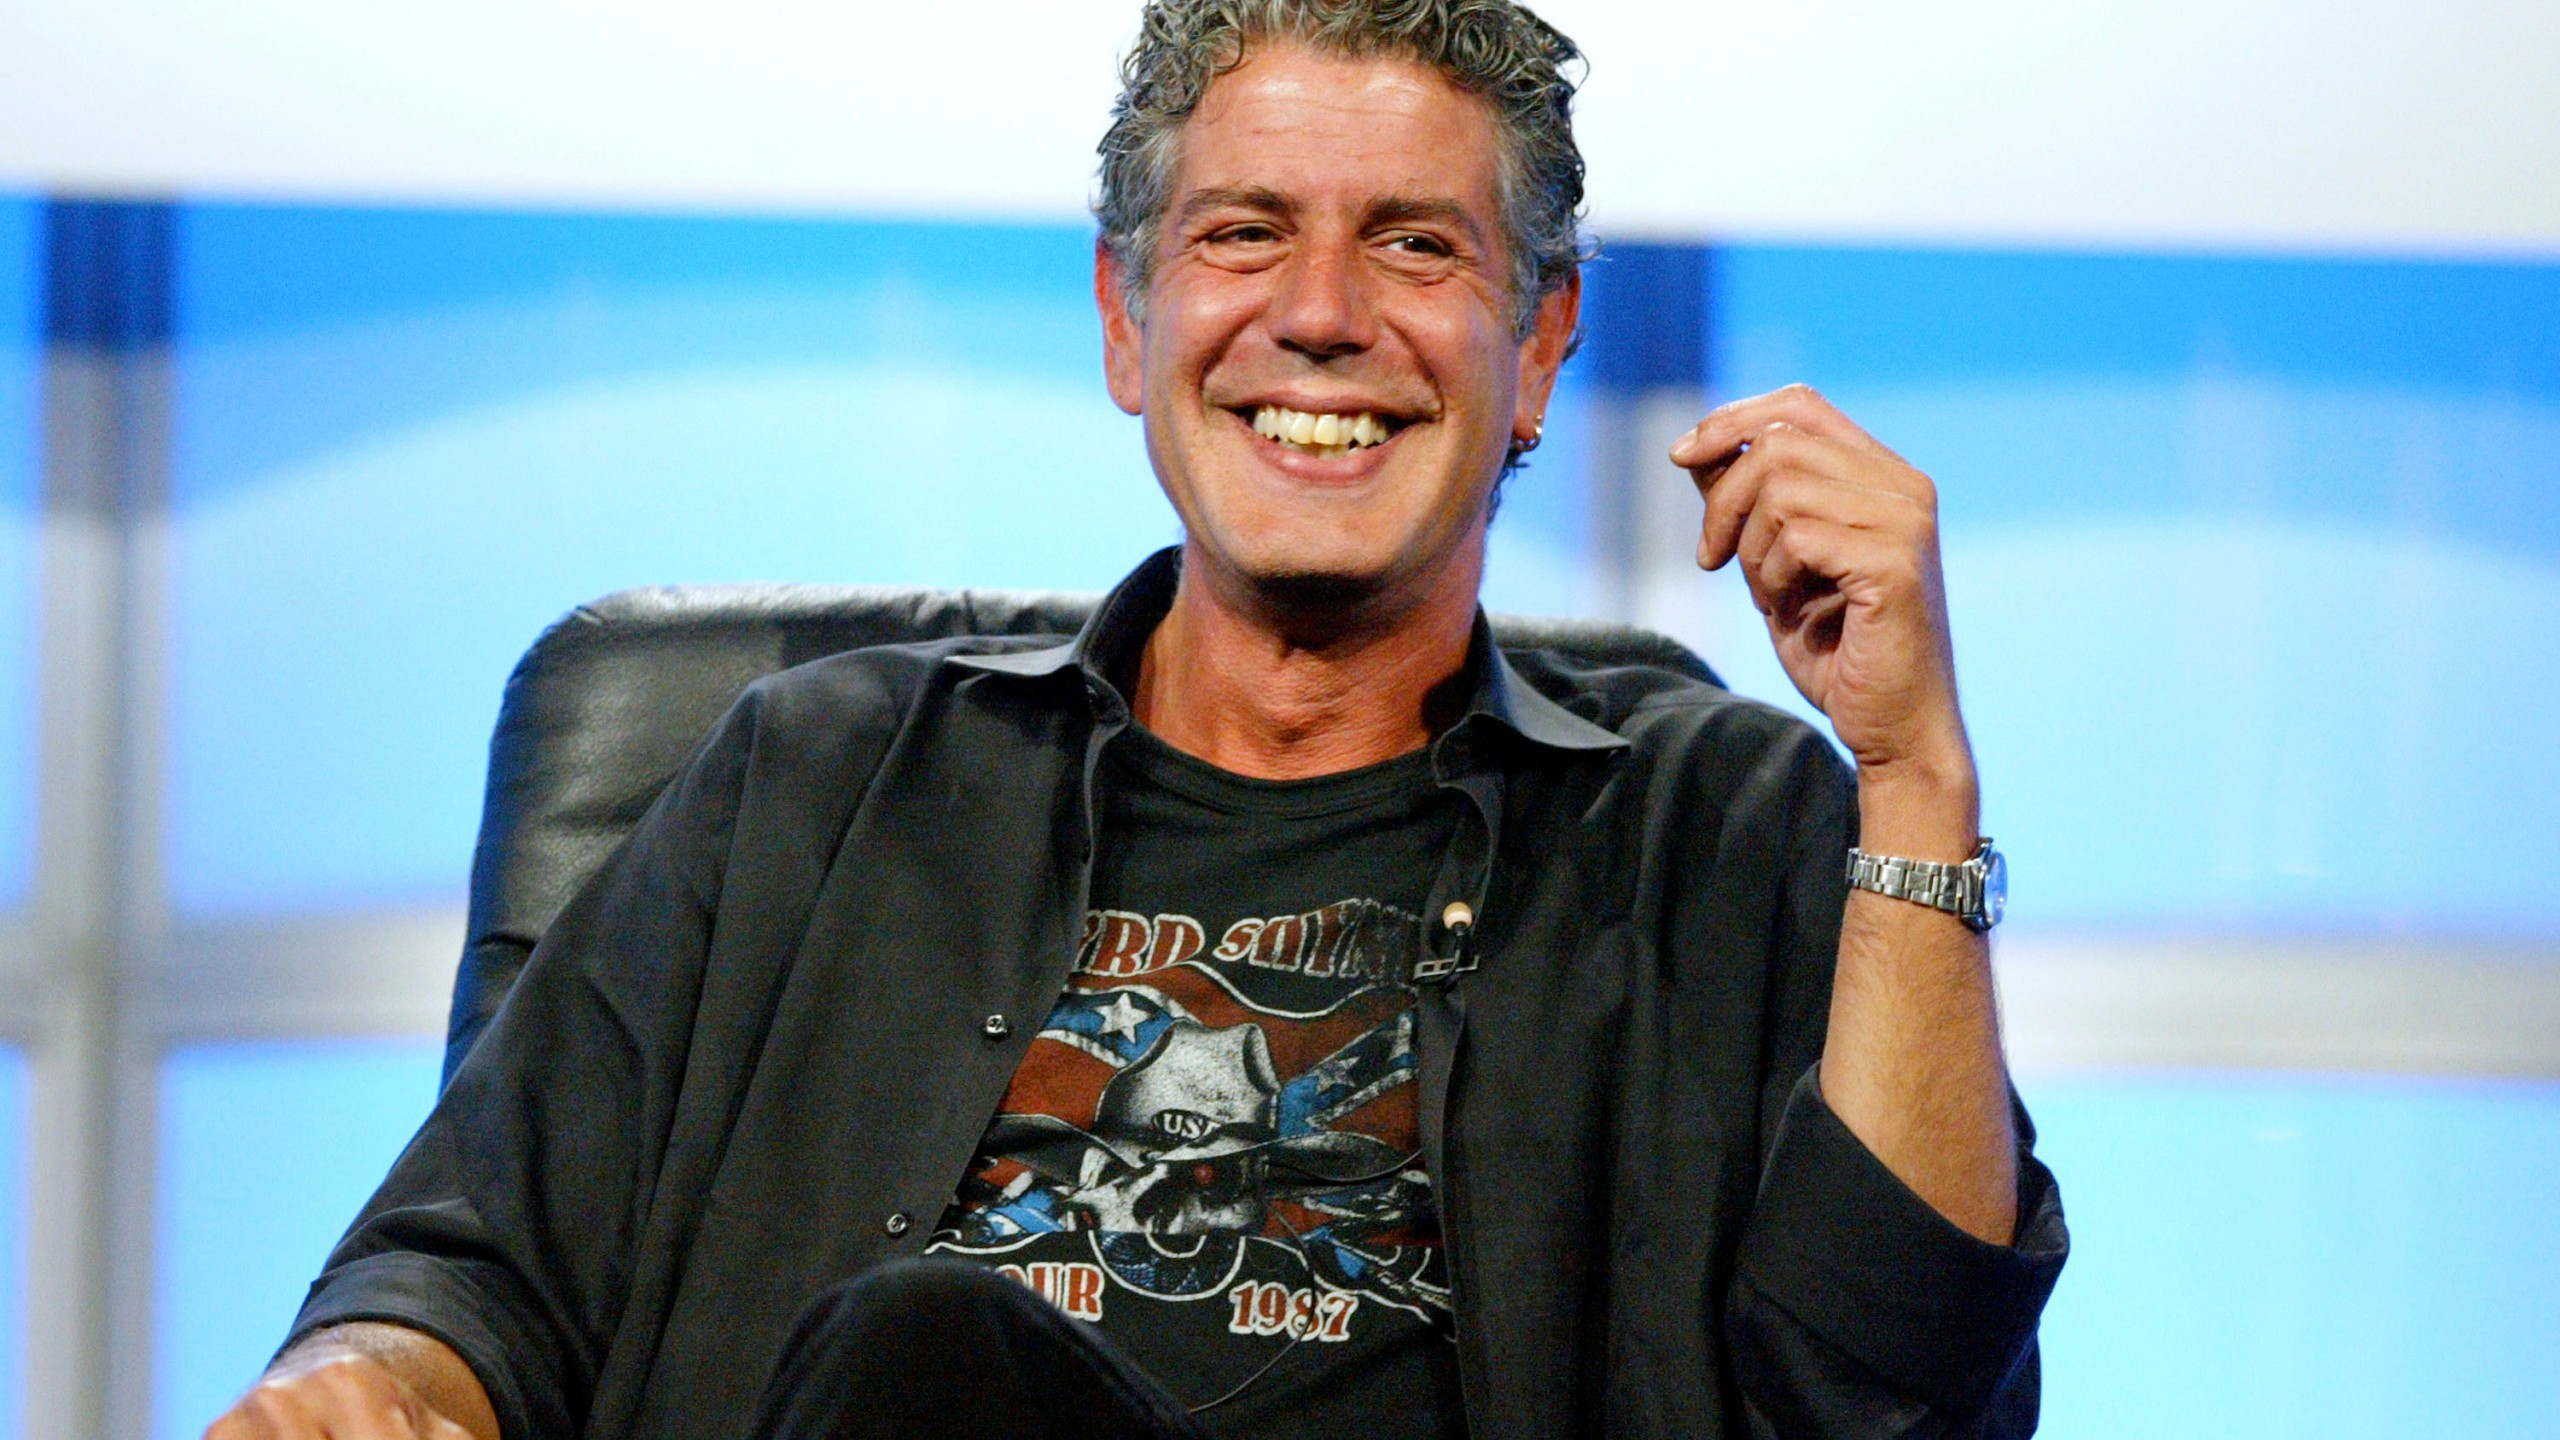 "Anthony Bourdain attends the panel discussion for ""Anthony Bourdain: No Reservations"" during the Discovery Networks' Travel Channel presentation at the 2005 Television Critics Association Summer Press Tour at the Beverly Hilton Hotel on July 16, 2005 in Beverly Hills. (Credit: Frederick M. Brown/Getty Images)"